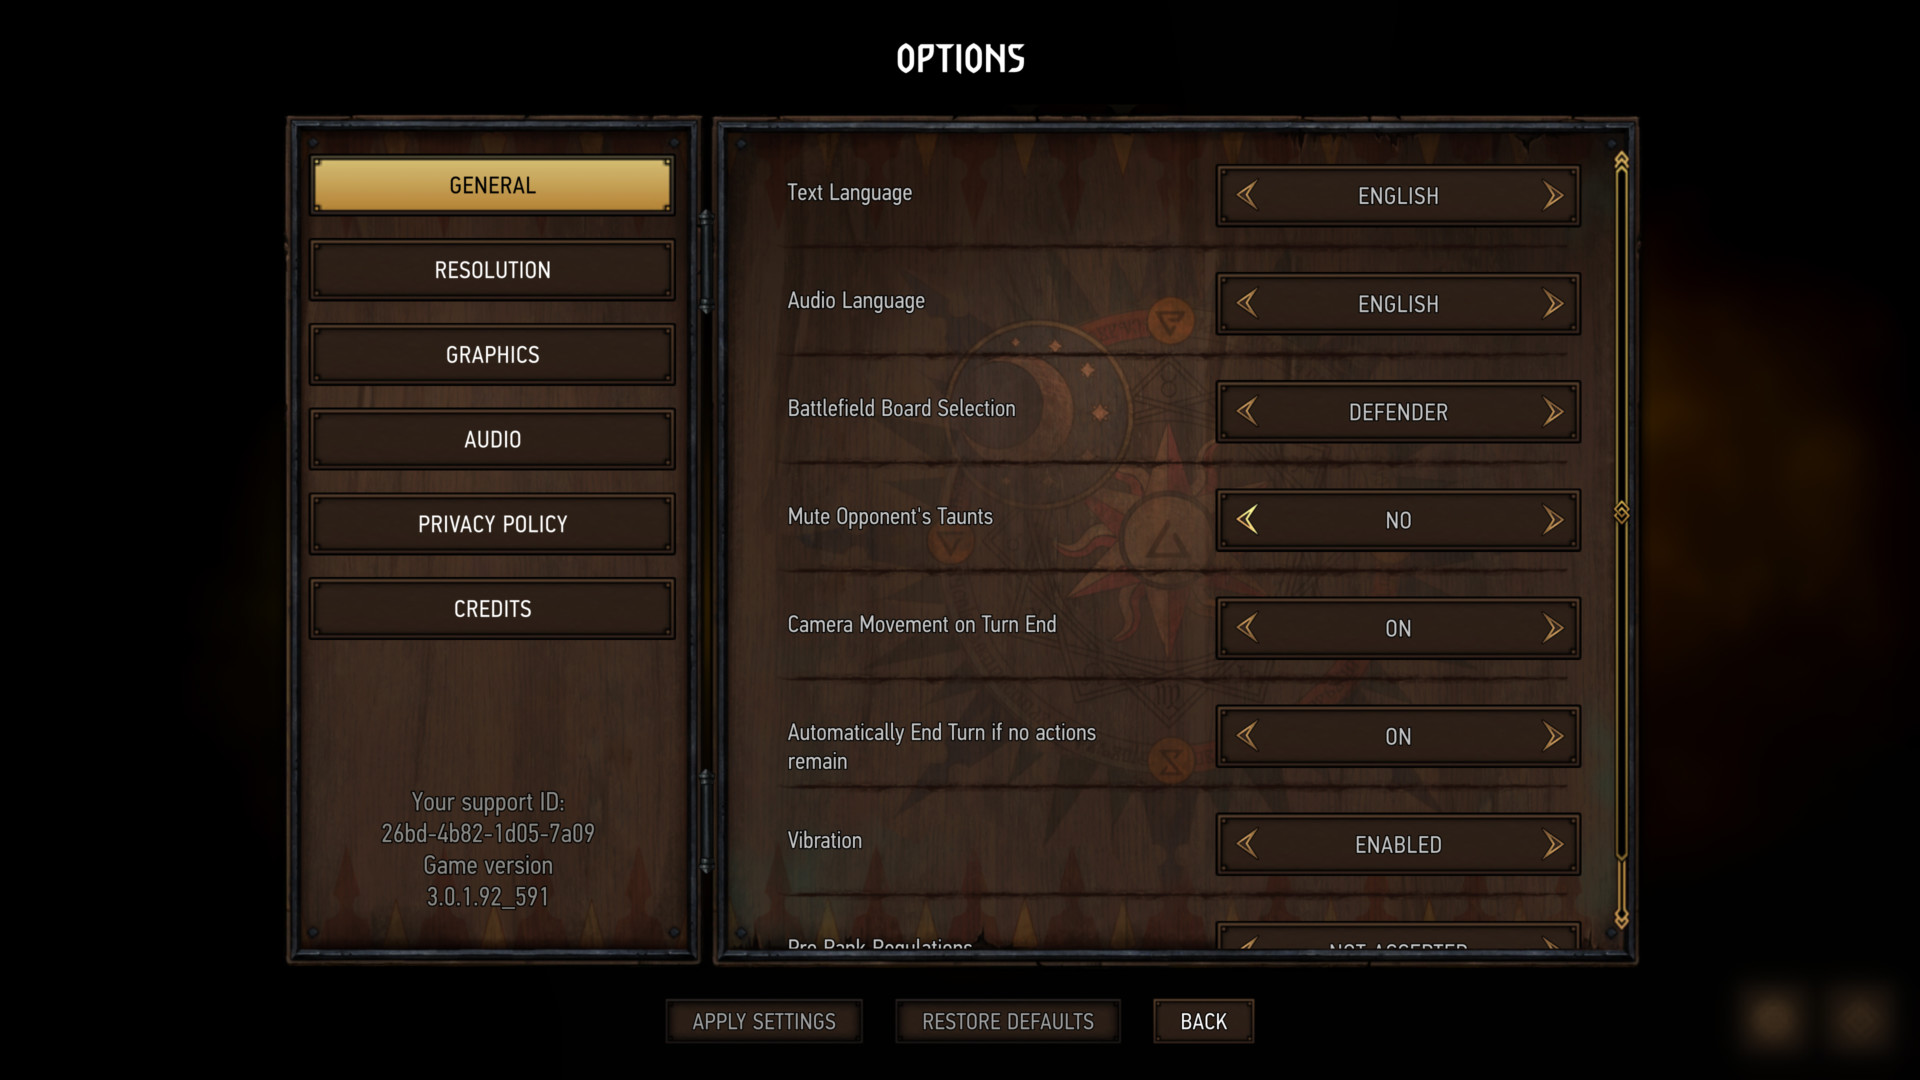 General screenshot of Gwent: The Witcher Card Game video game interface.